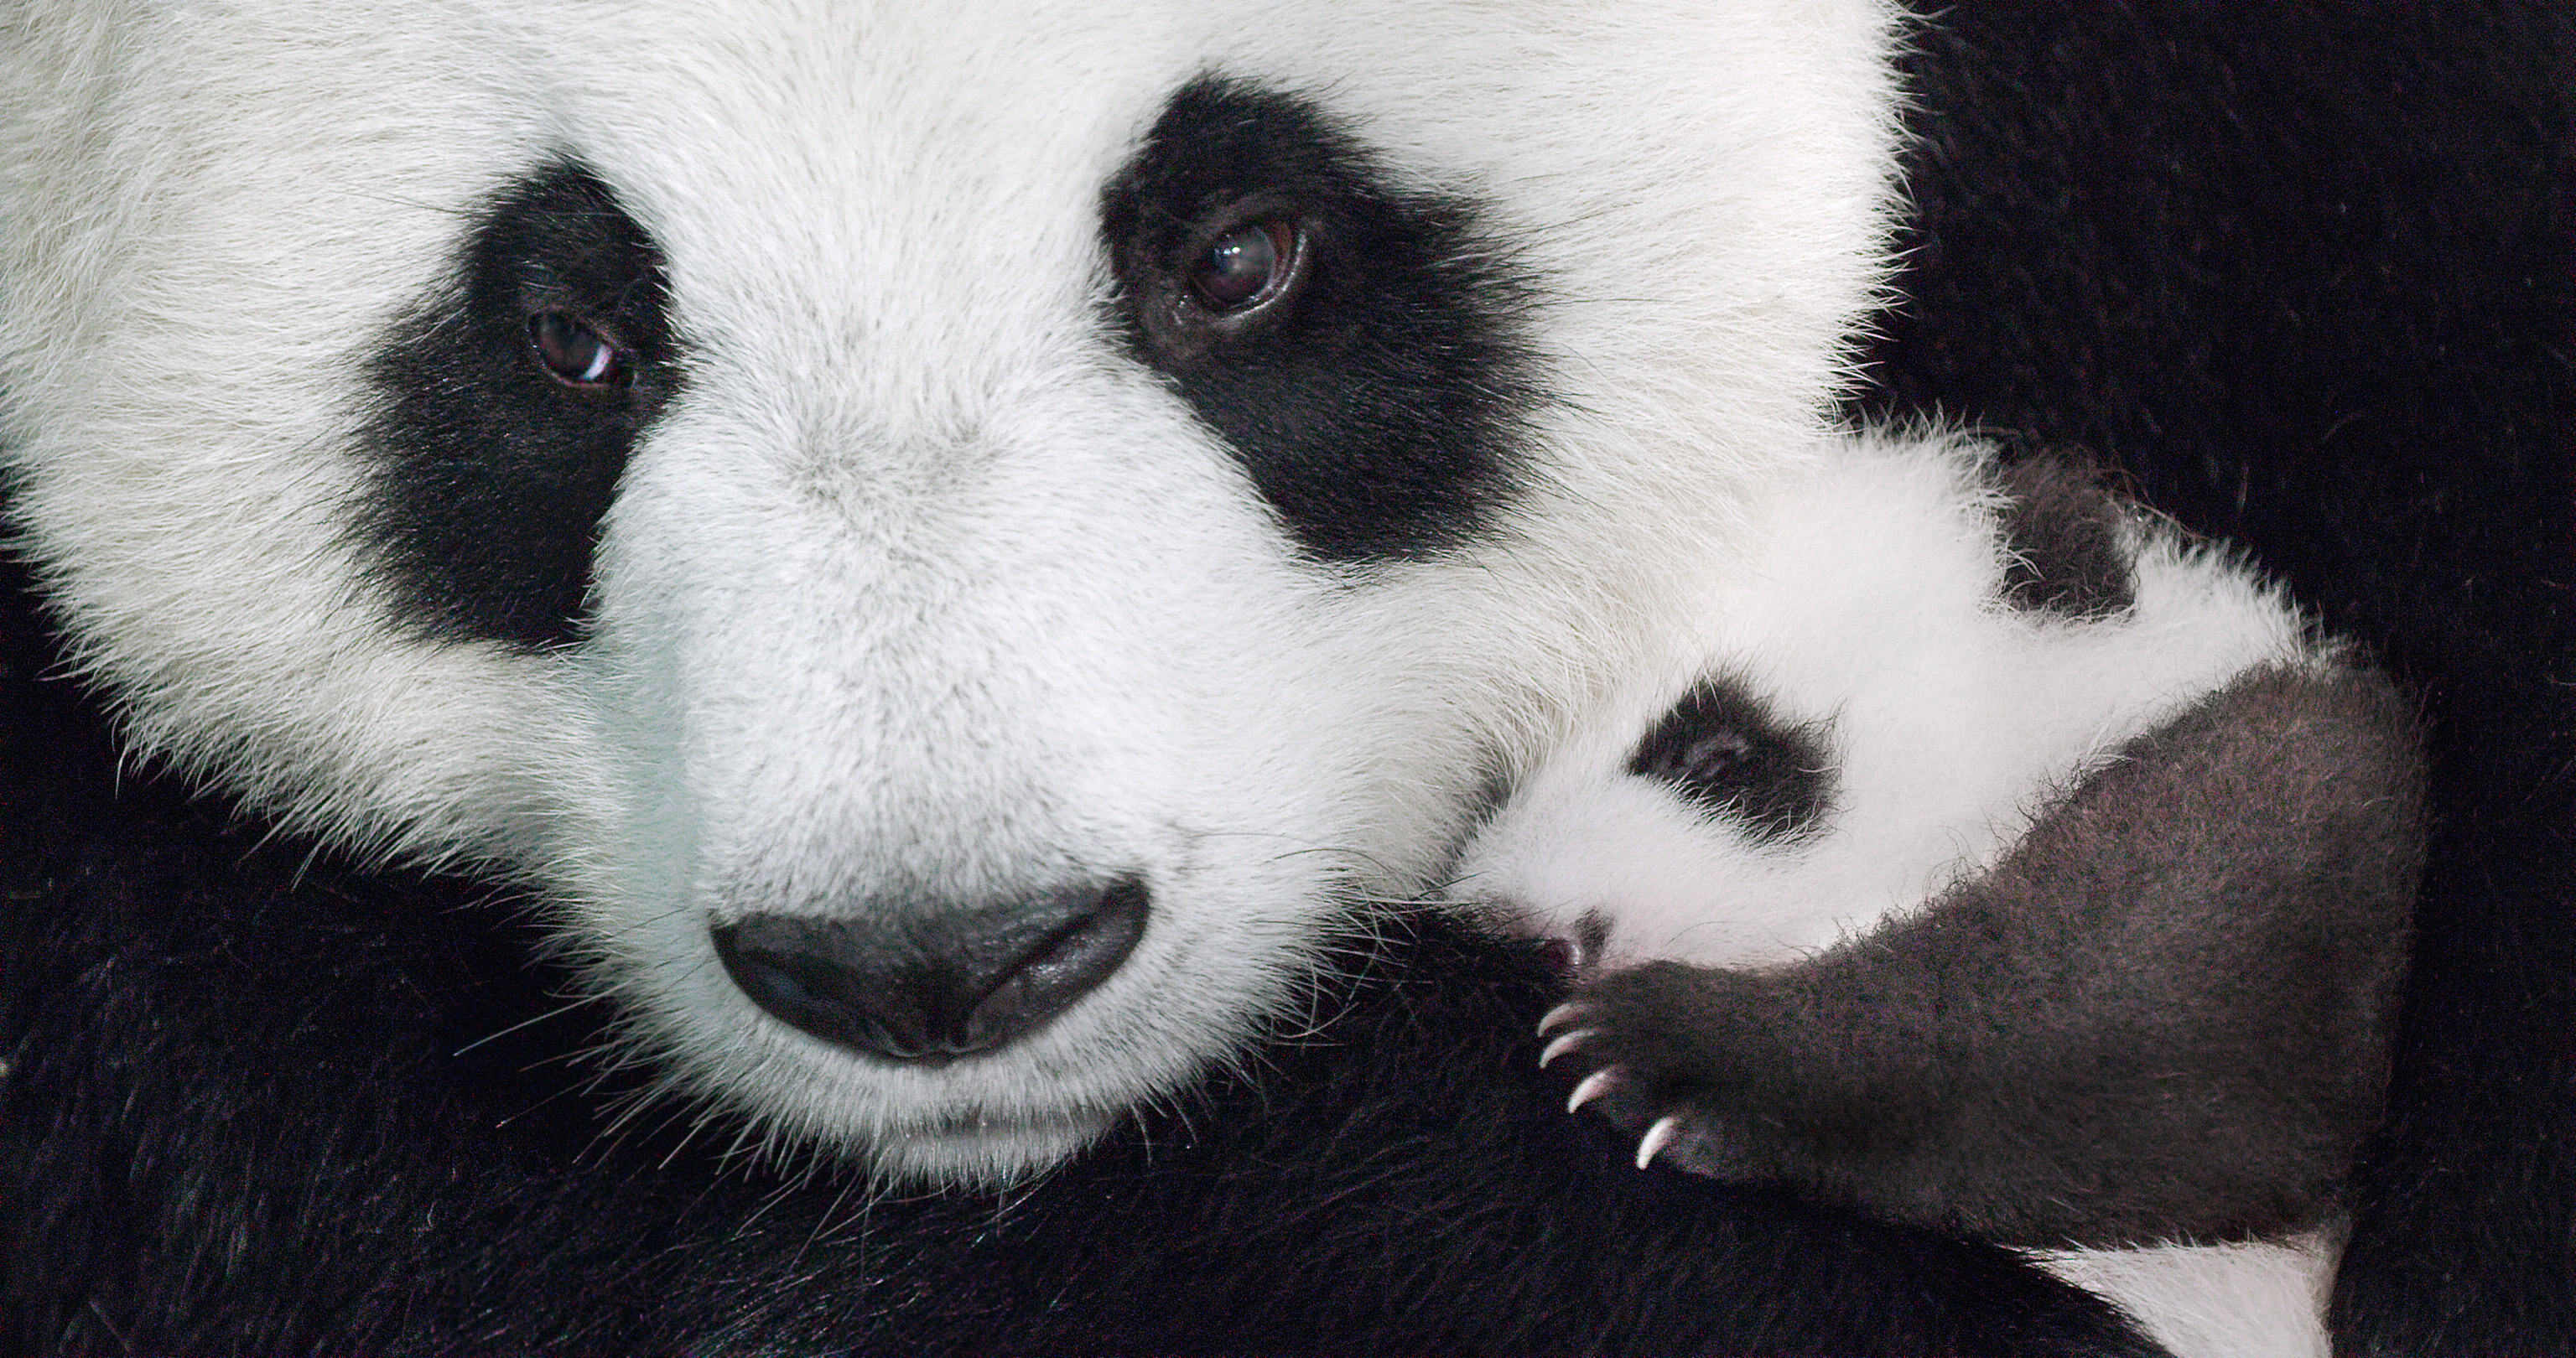 Born in China Giant Panda YaYa and cub MeiMei